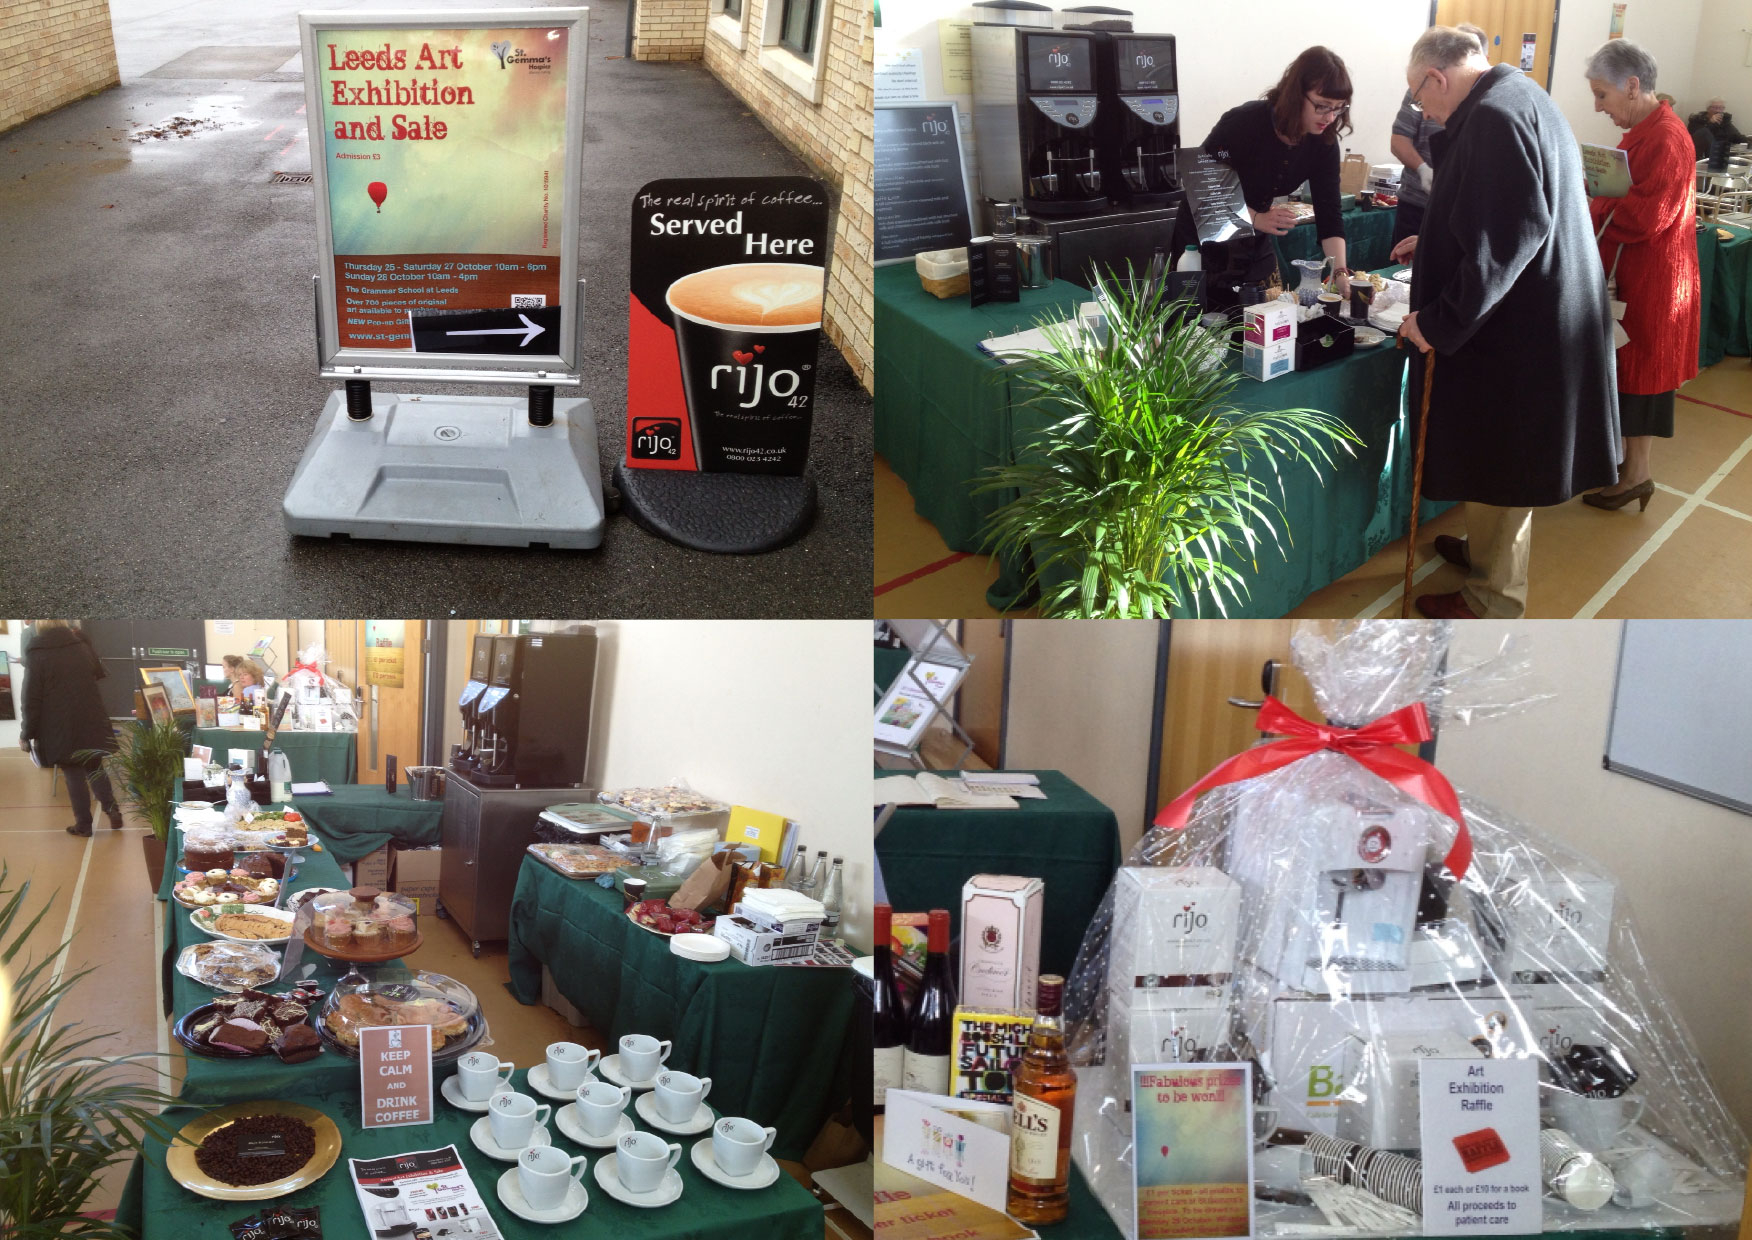 rijo42 Bean to Cup Coffee Machines At St Gemma's Hospice Annual Art Exhibition 2012